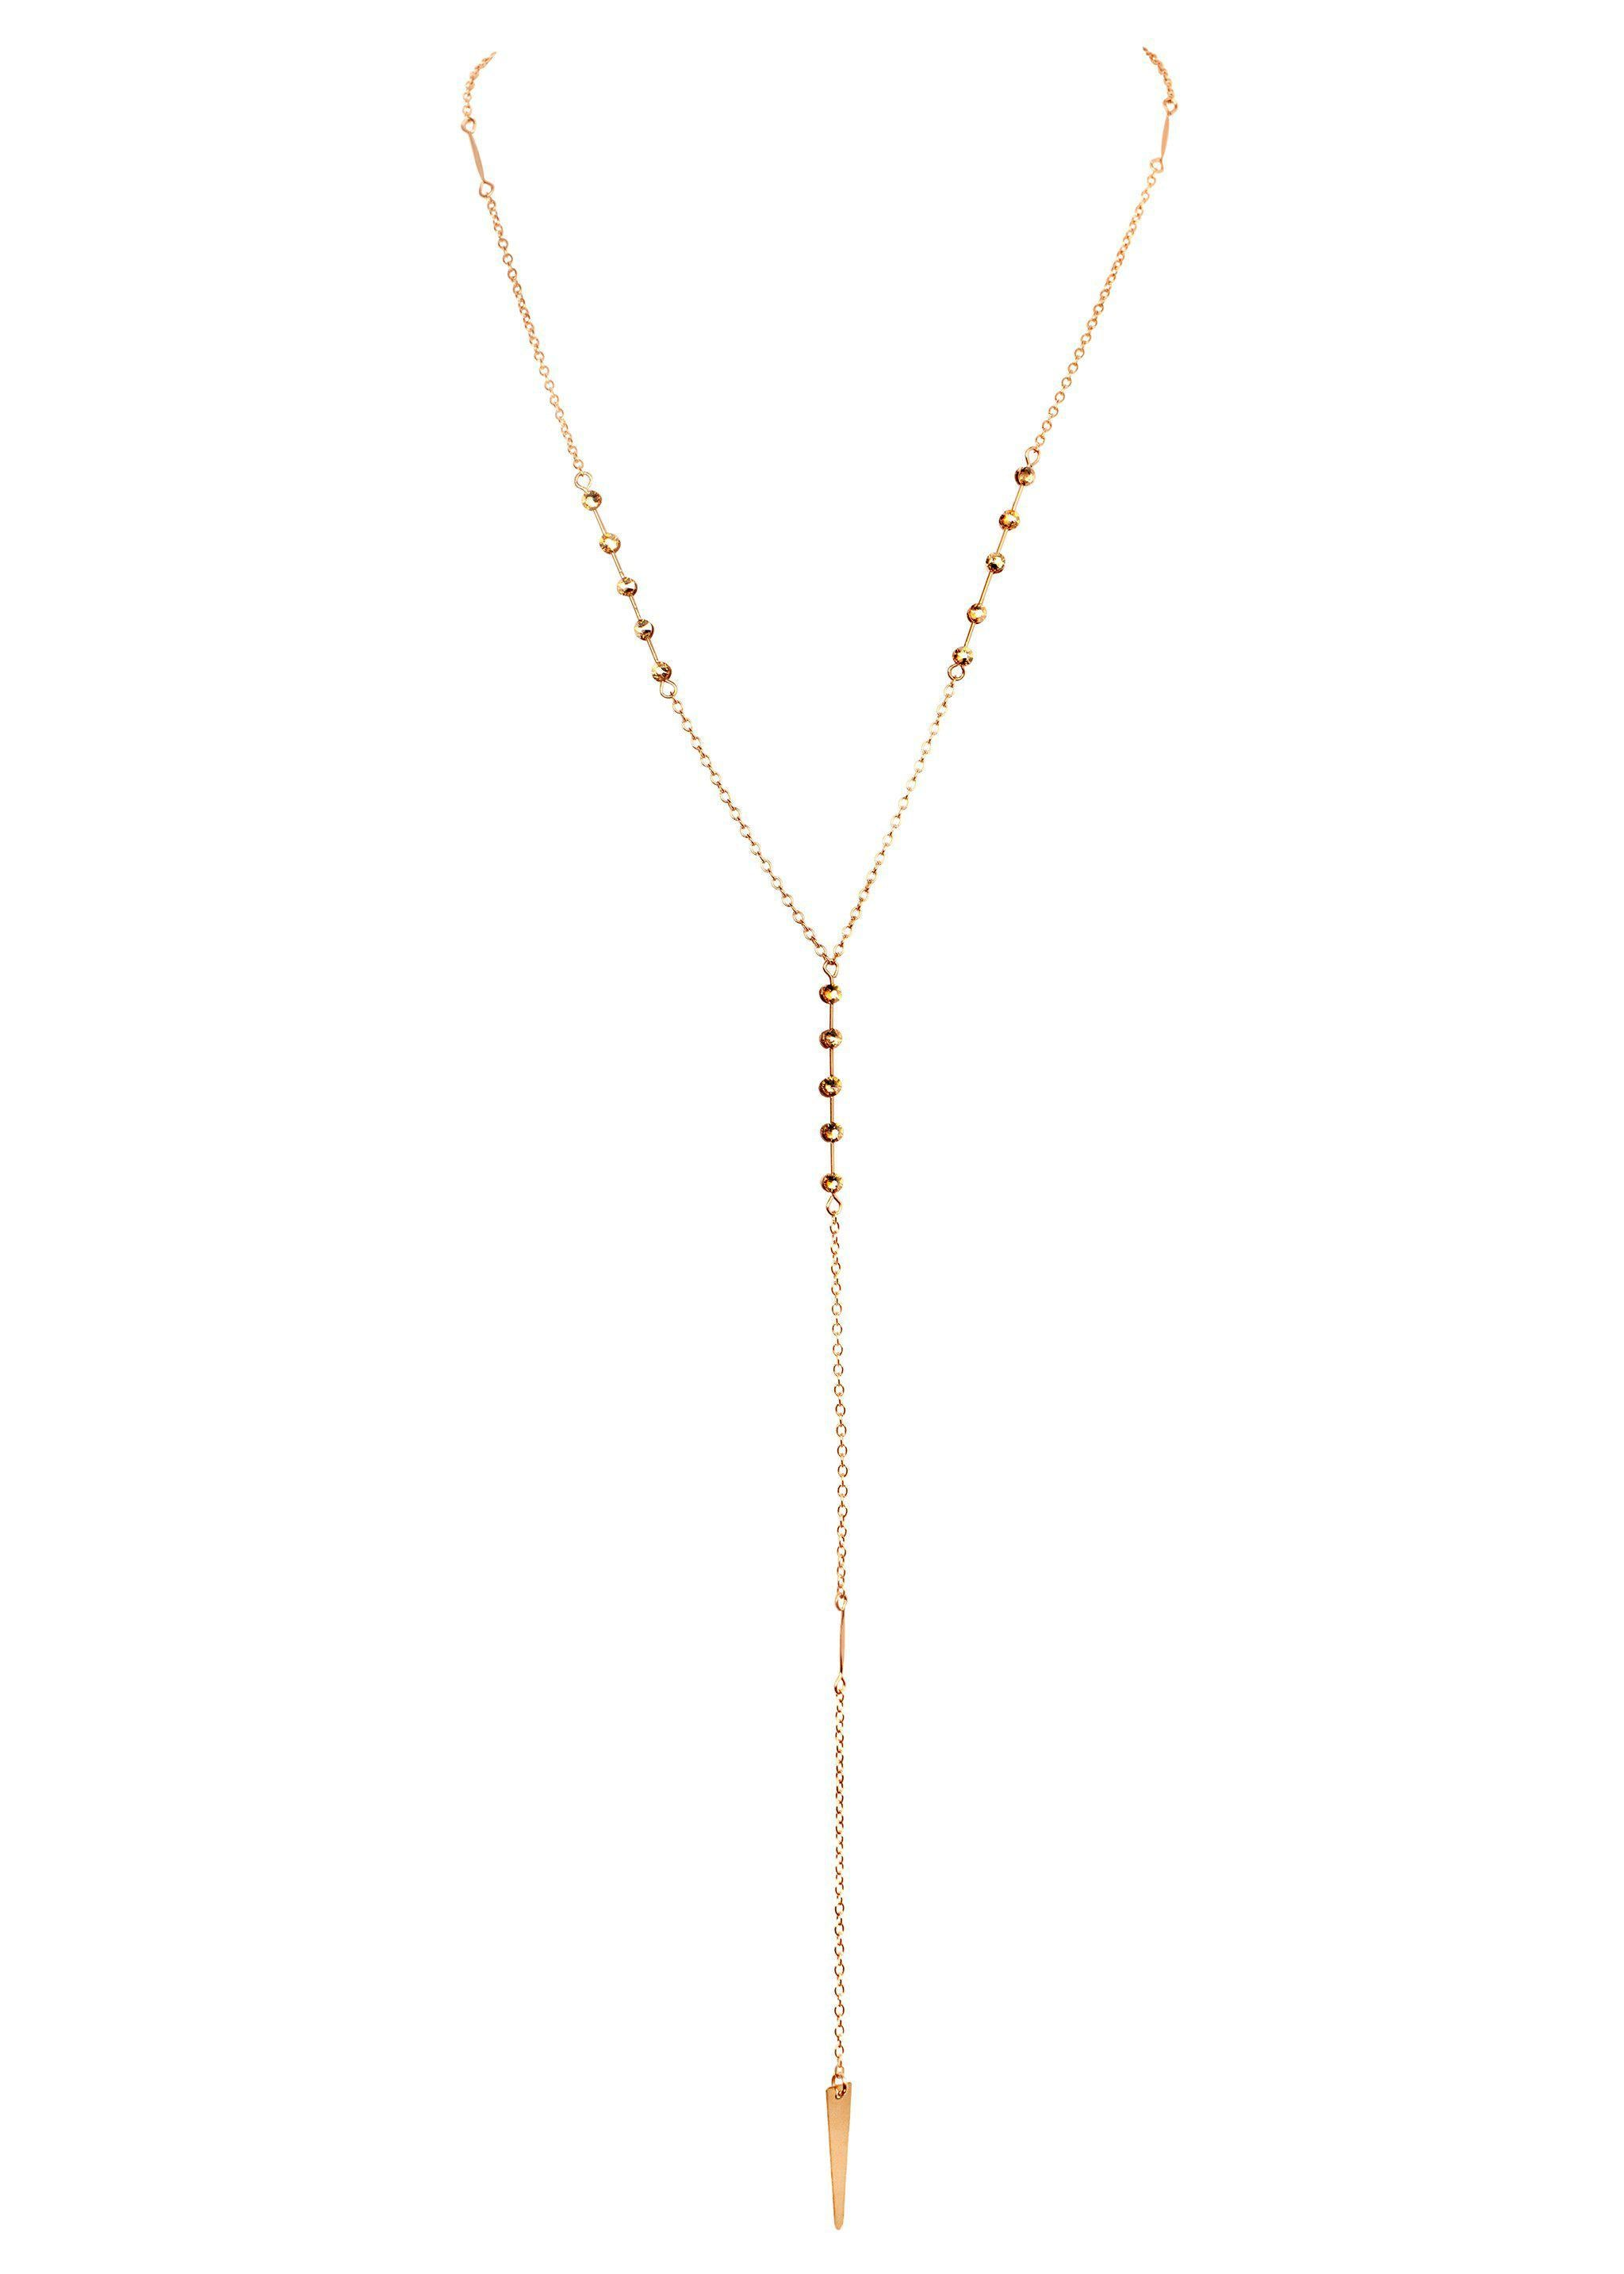 Crystal Simplicity Necklace - Goldish